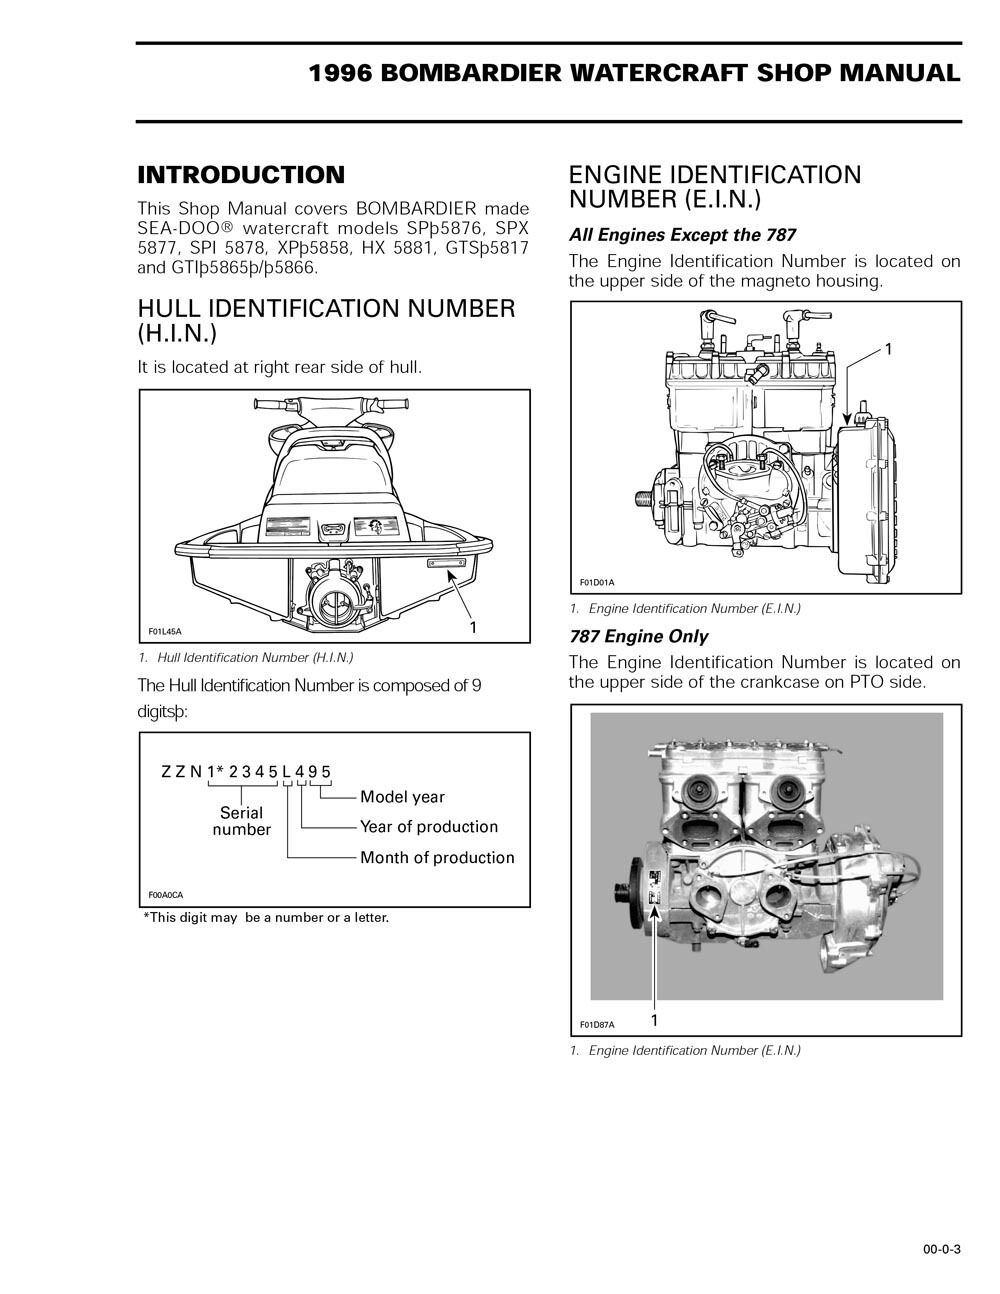 Seadoo Hx Repair Manual Ebook Anyone Know Where To Get A Circuit Diagram For Hitachi 43f300 Tv Array Rh Spirulinas De